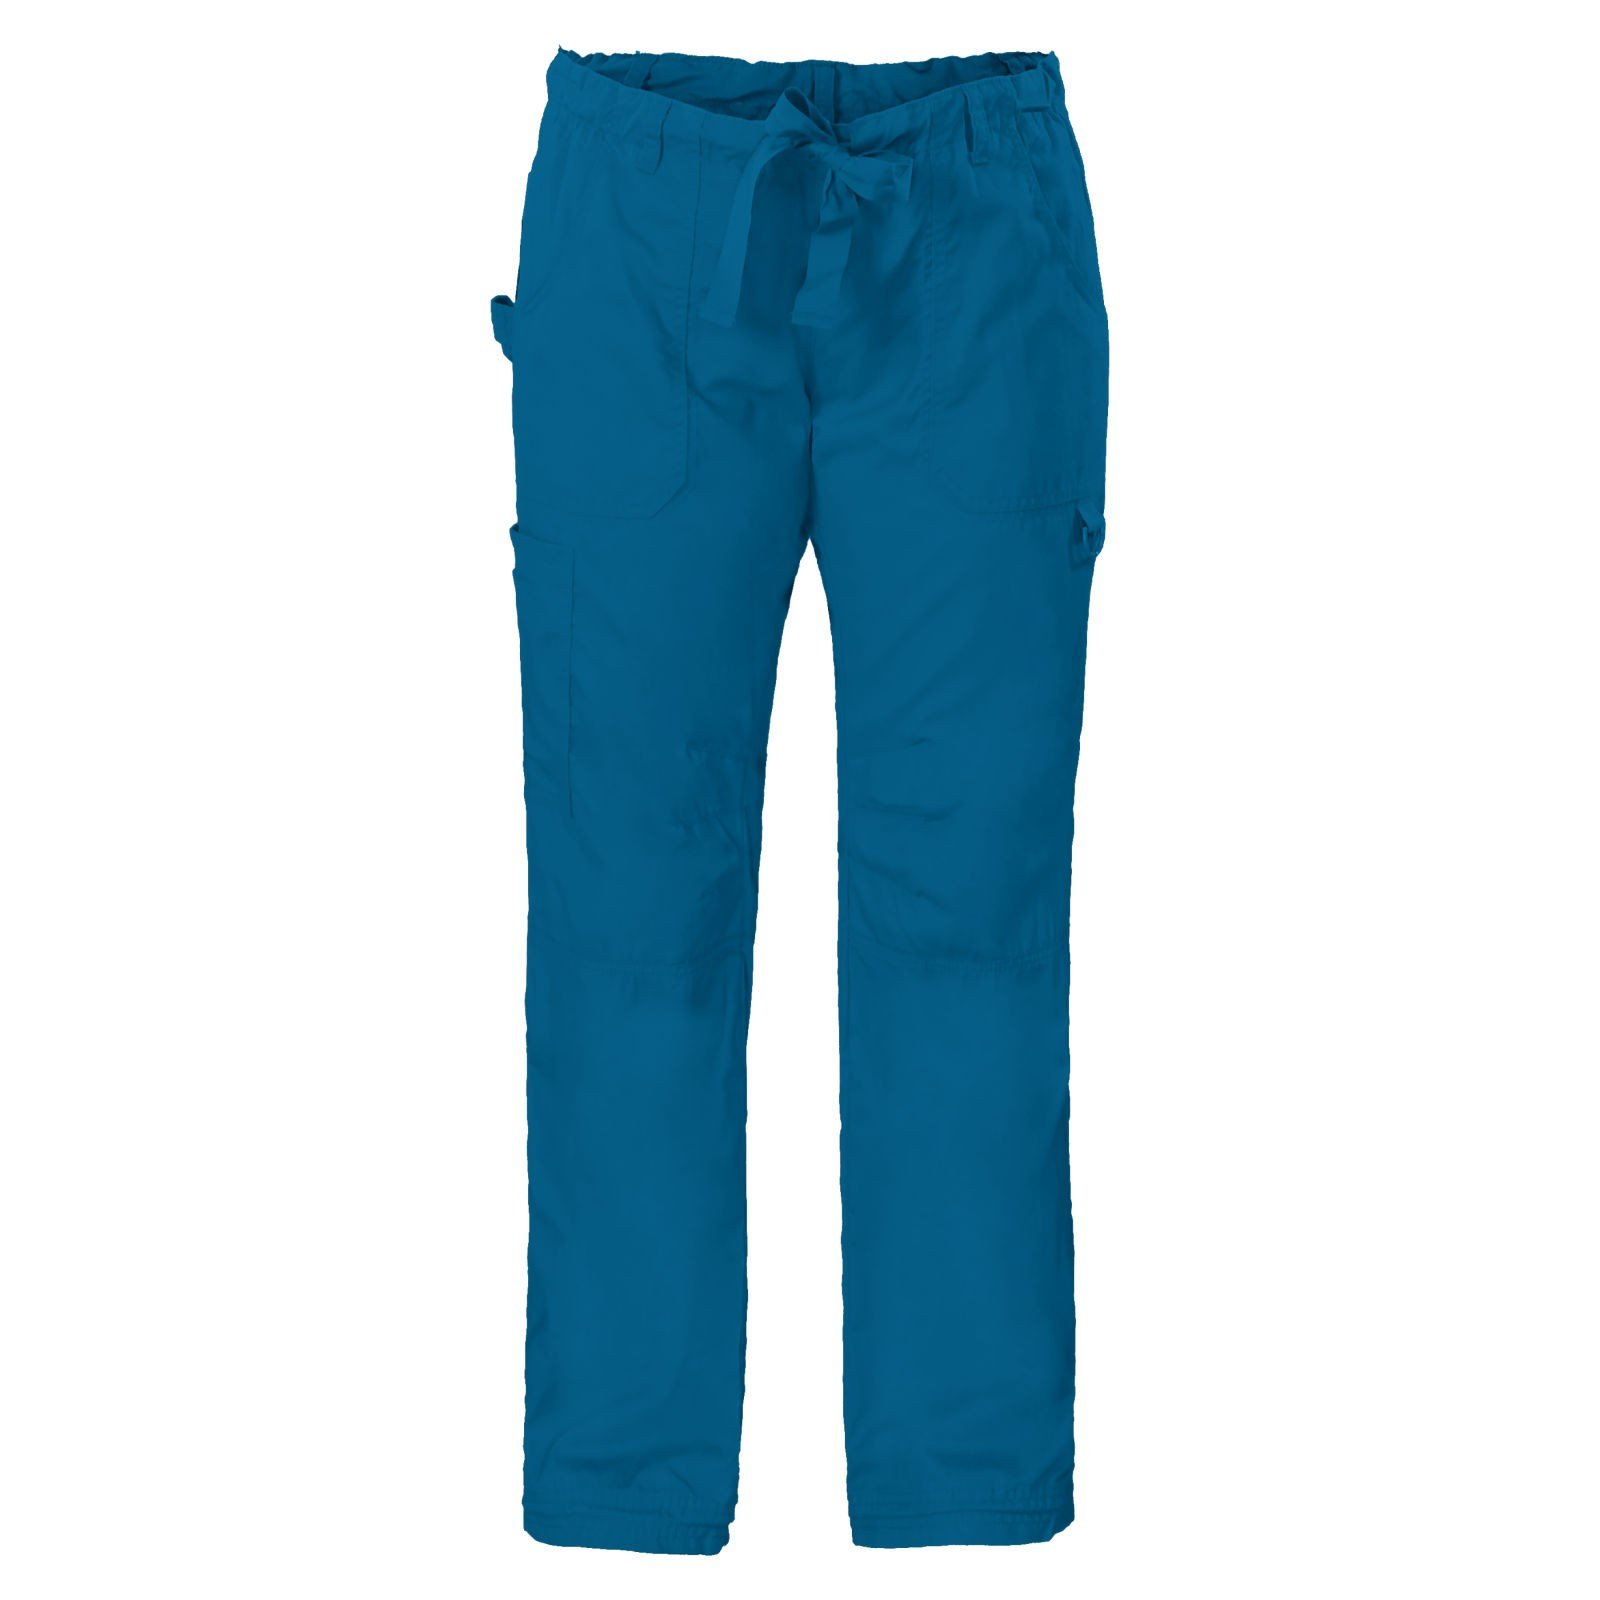 KOI Women's Lindsey Ultra Comfortable Cargo Style Scrub Pants (Petite Sizes) (P2X, Peacock)